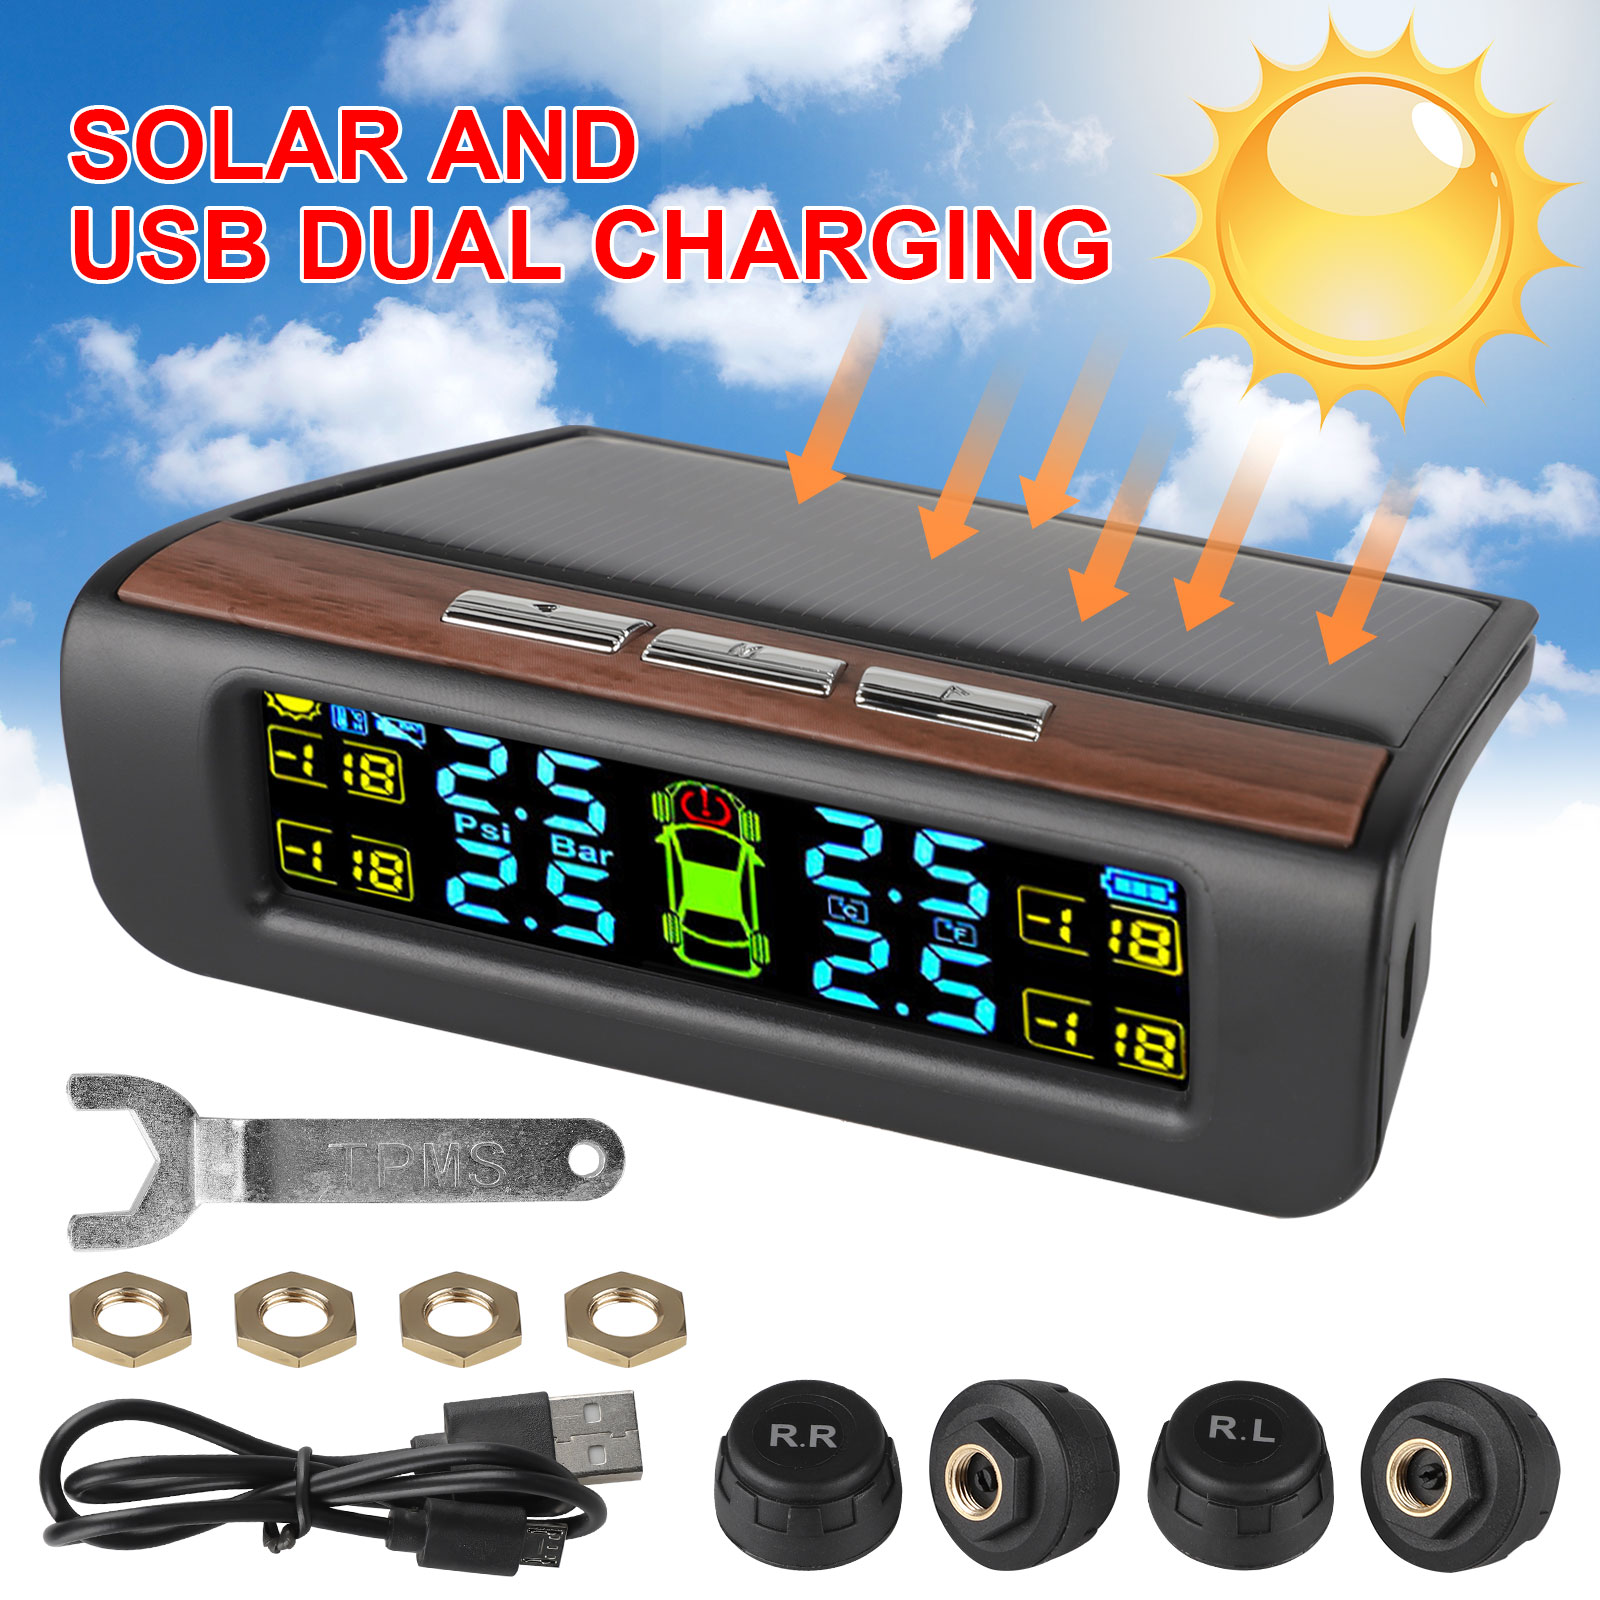 Invtek Solar Power RV TPMS Tire Pressure Monitoring System with 6 Wireless External Sensors for Truck//Tow Trailer//RV//Pickup Truck TPMS and Real-time Alarm Pressure with Temperature LCD Display